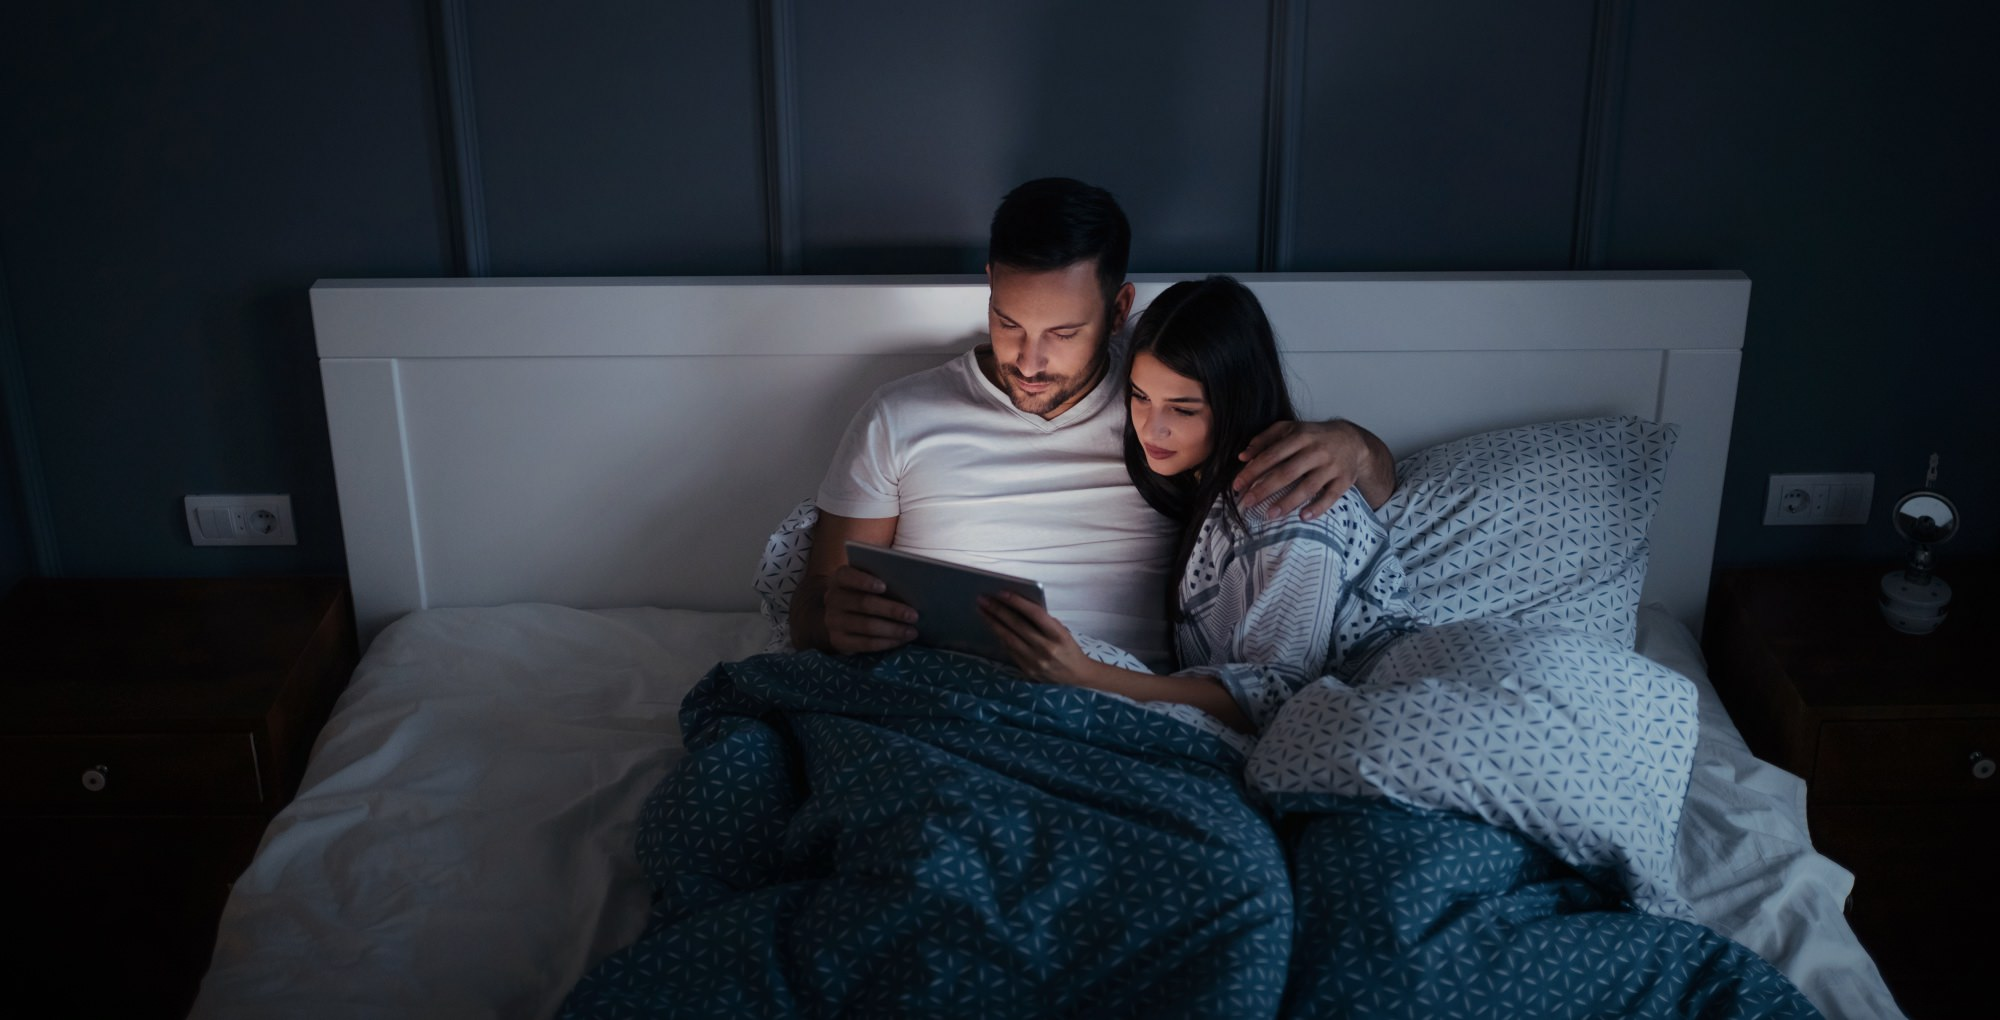 does-watching-porn-help-relationship-in-long-run-couple-in-bed-computer